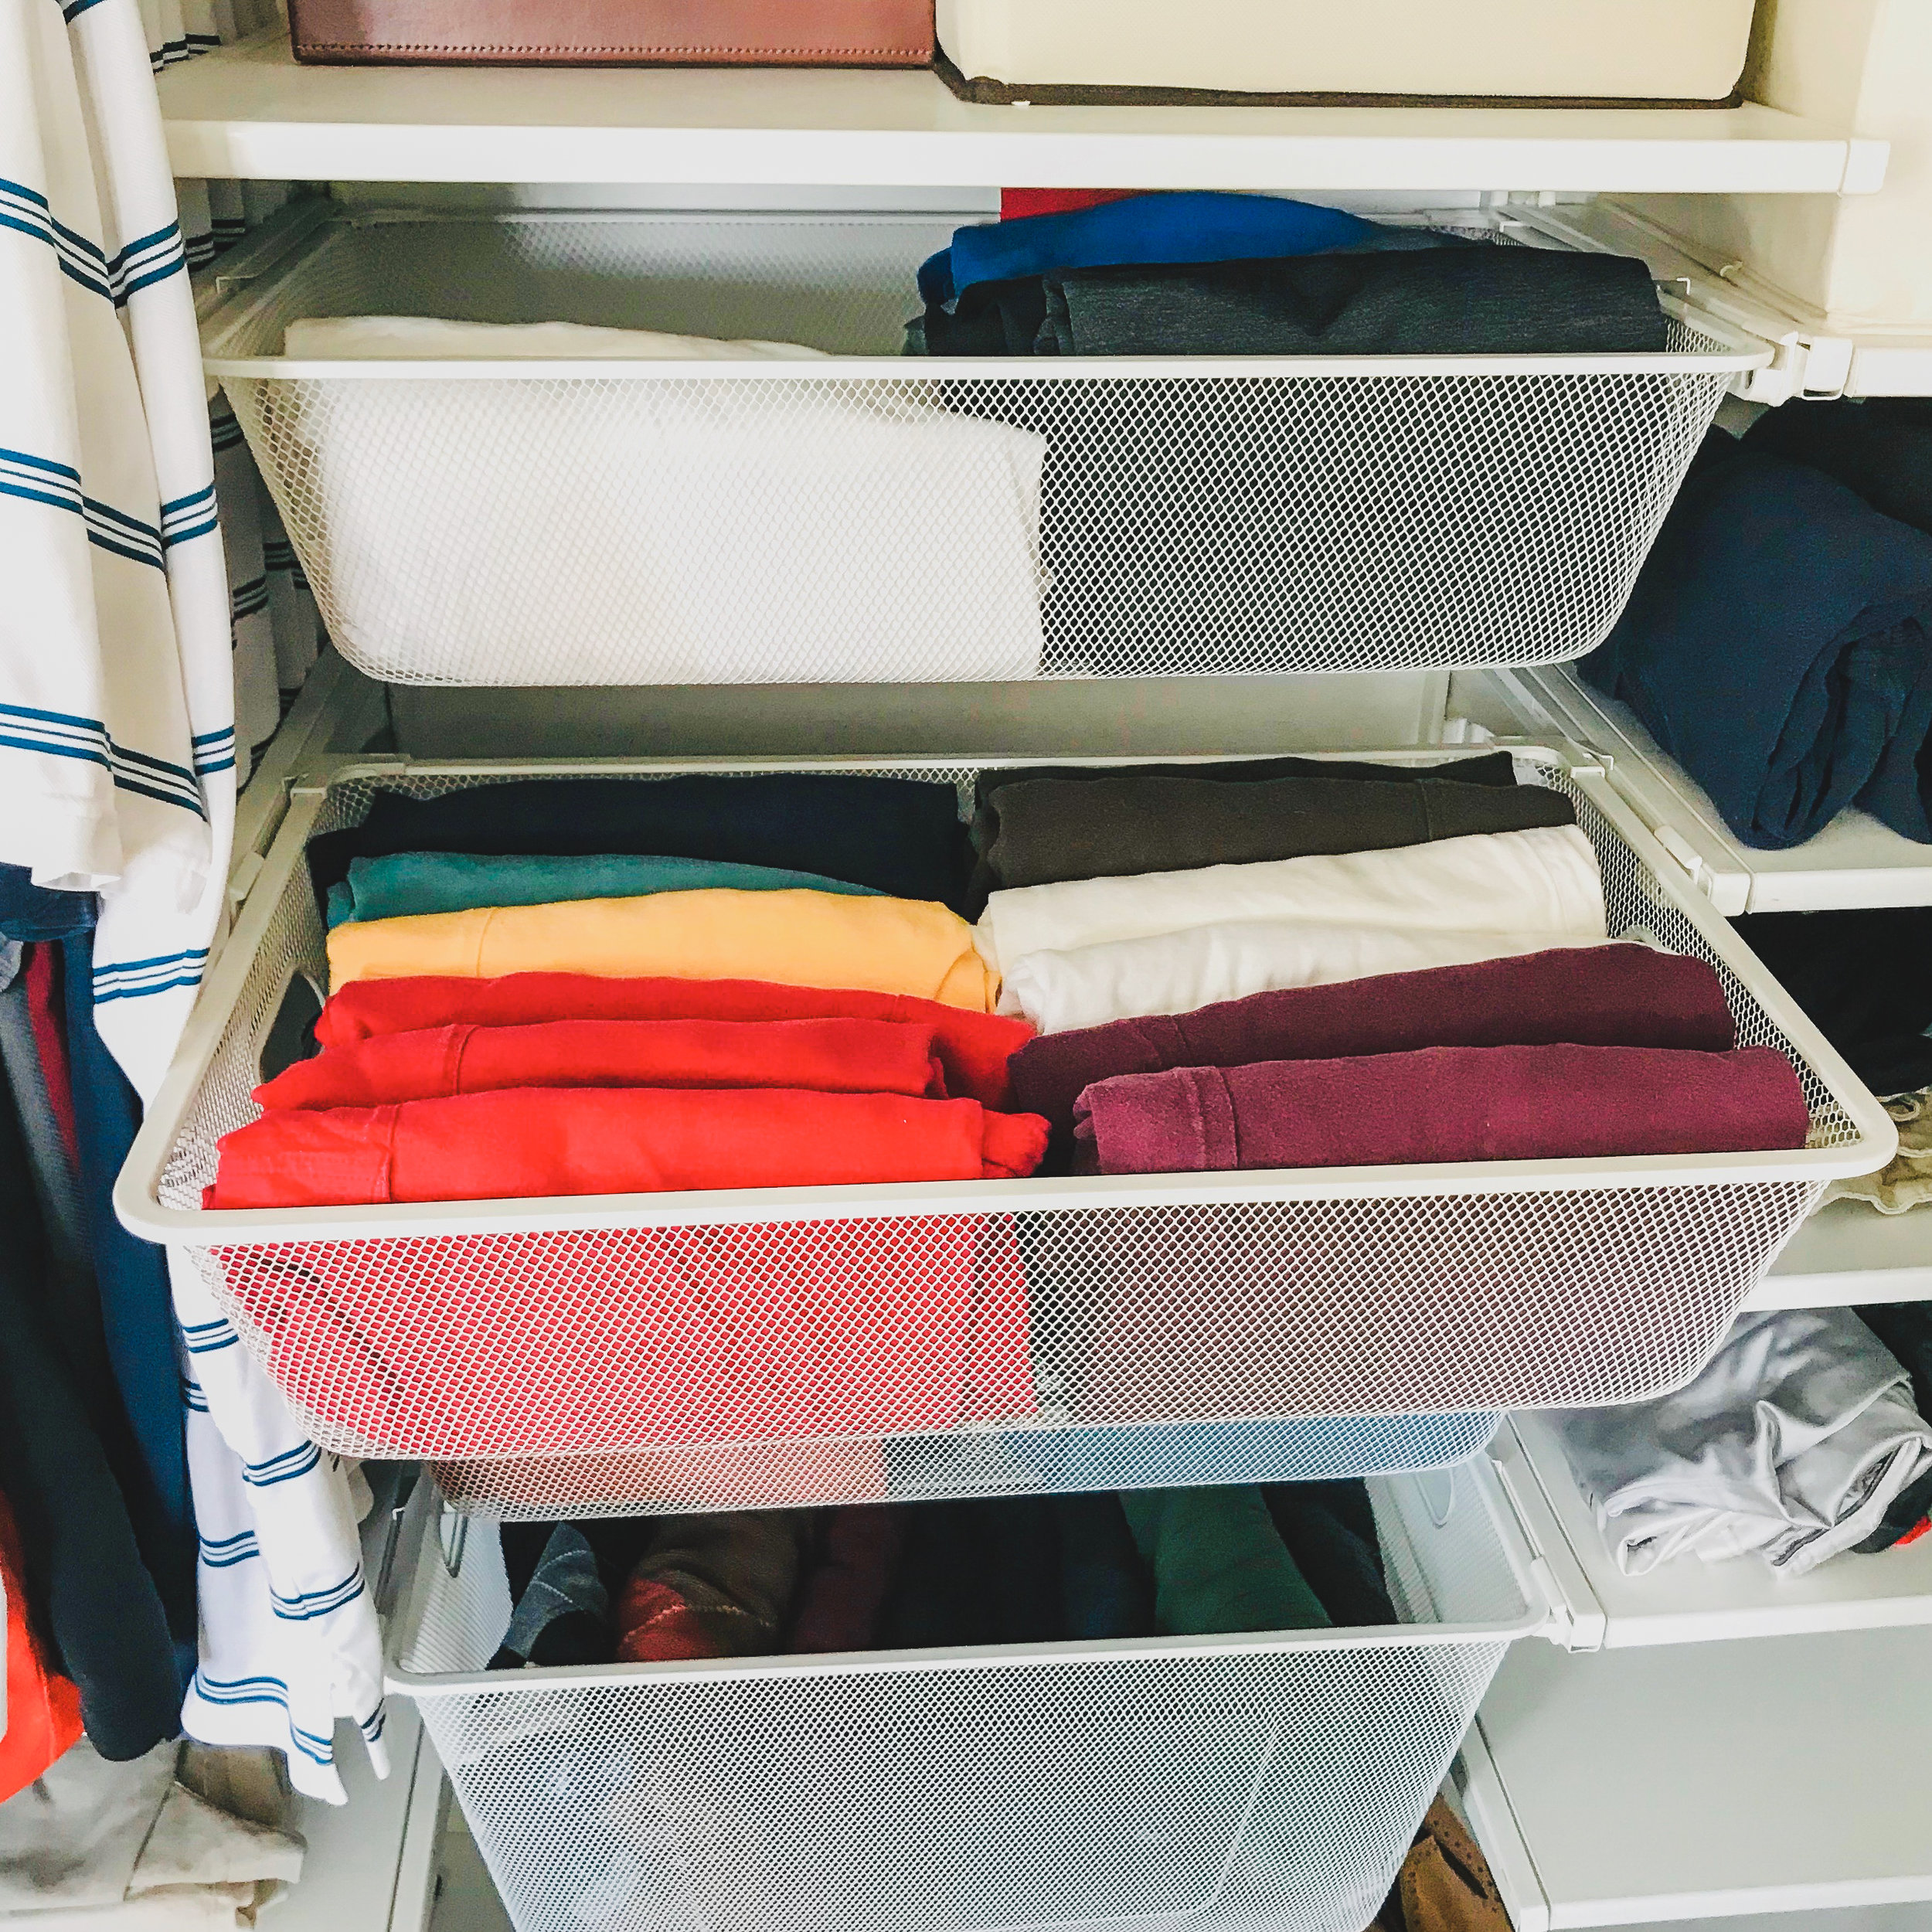 My husband's closet with shirts arranged in a spectrum.